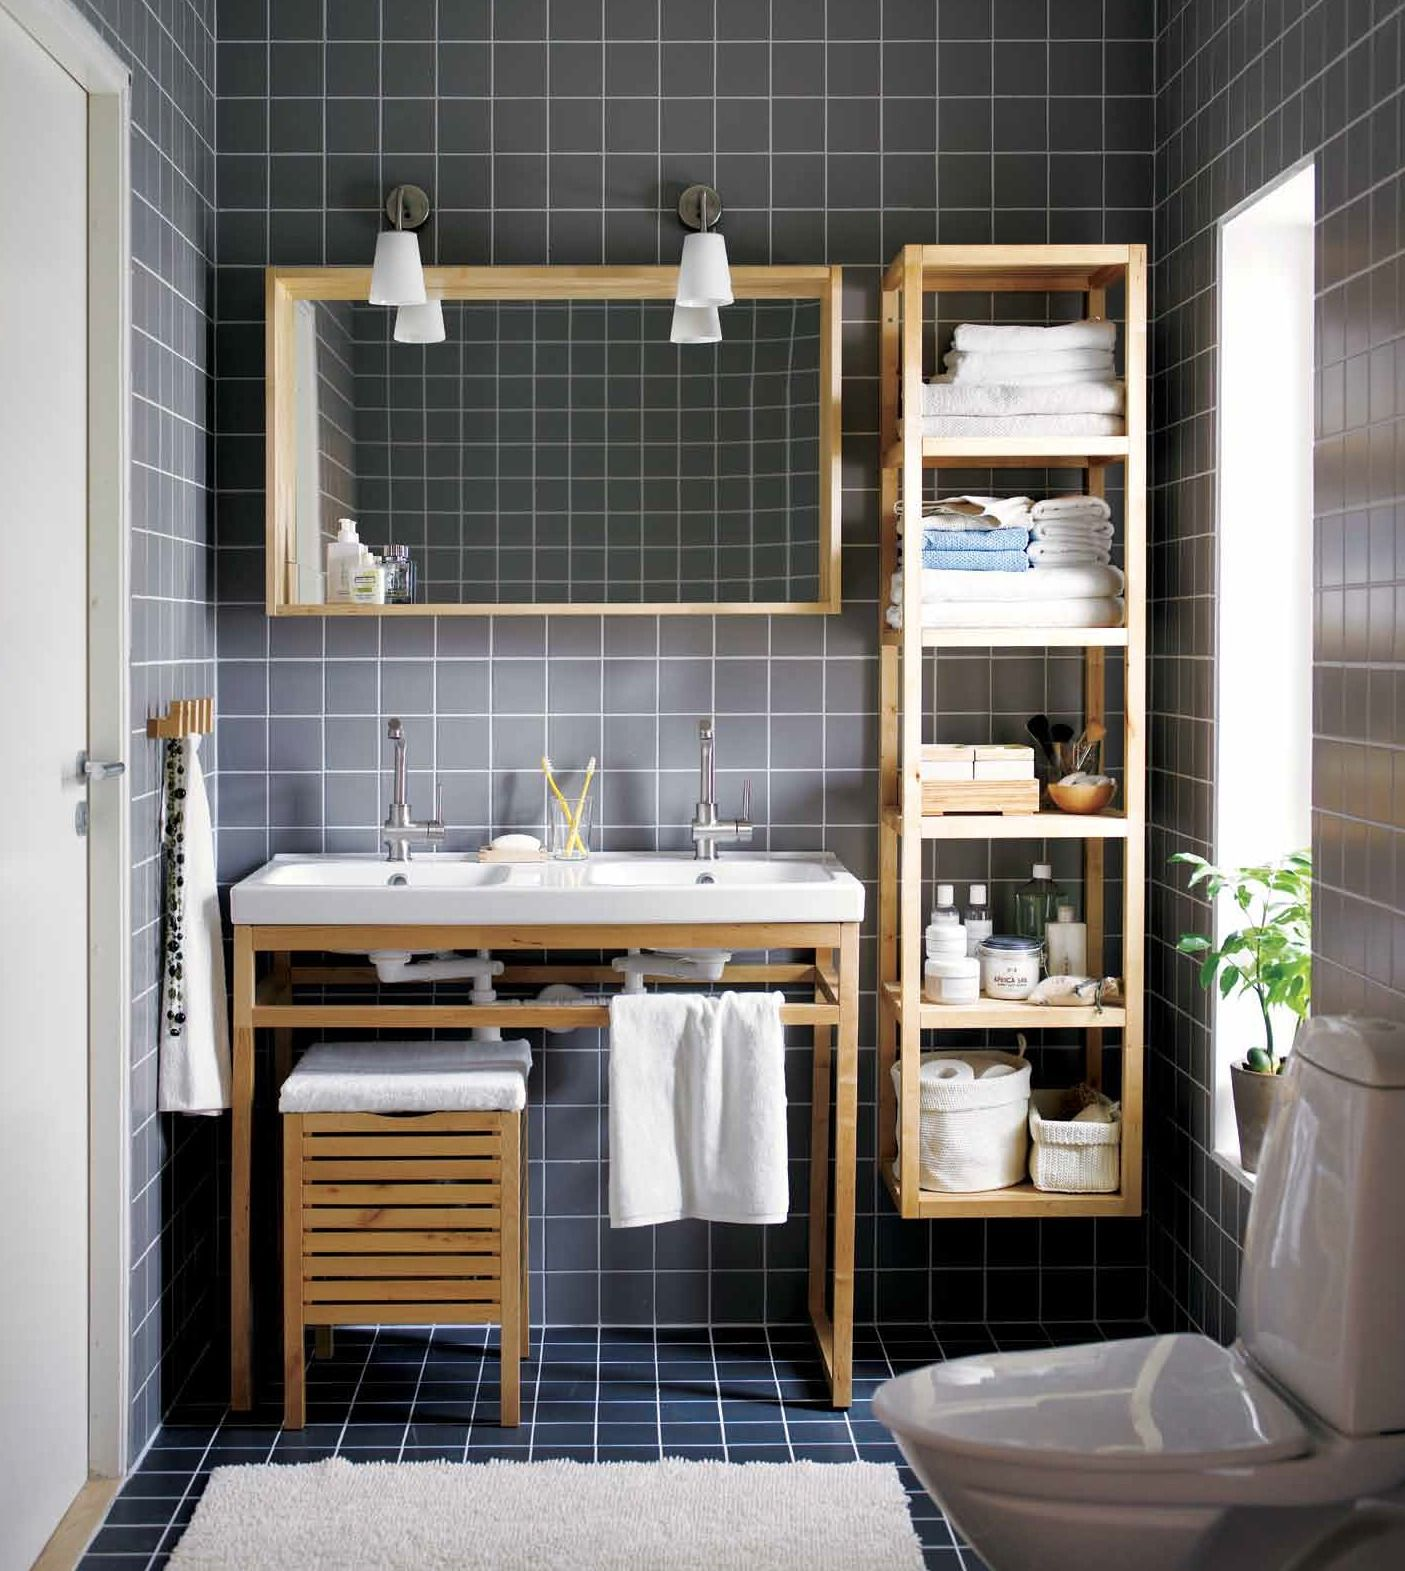 our molger bathroom series as featured in the latest issue of